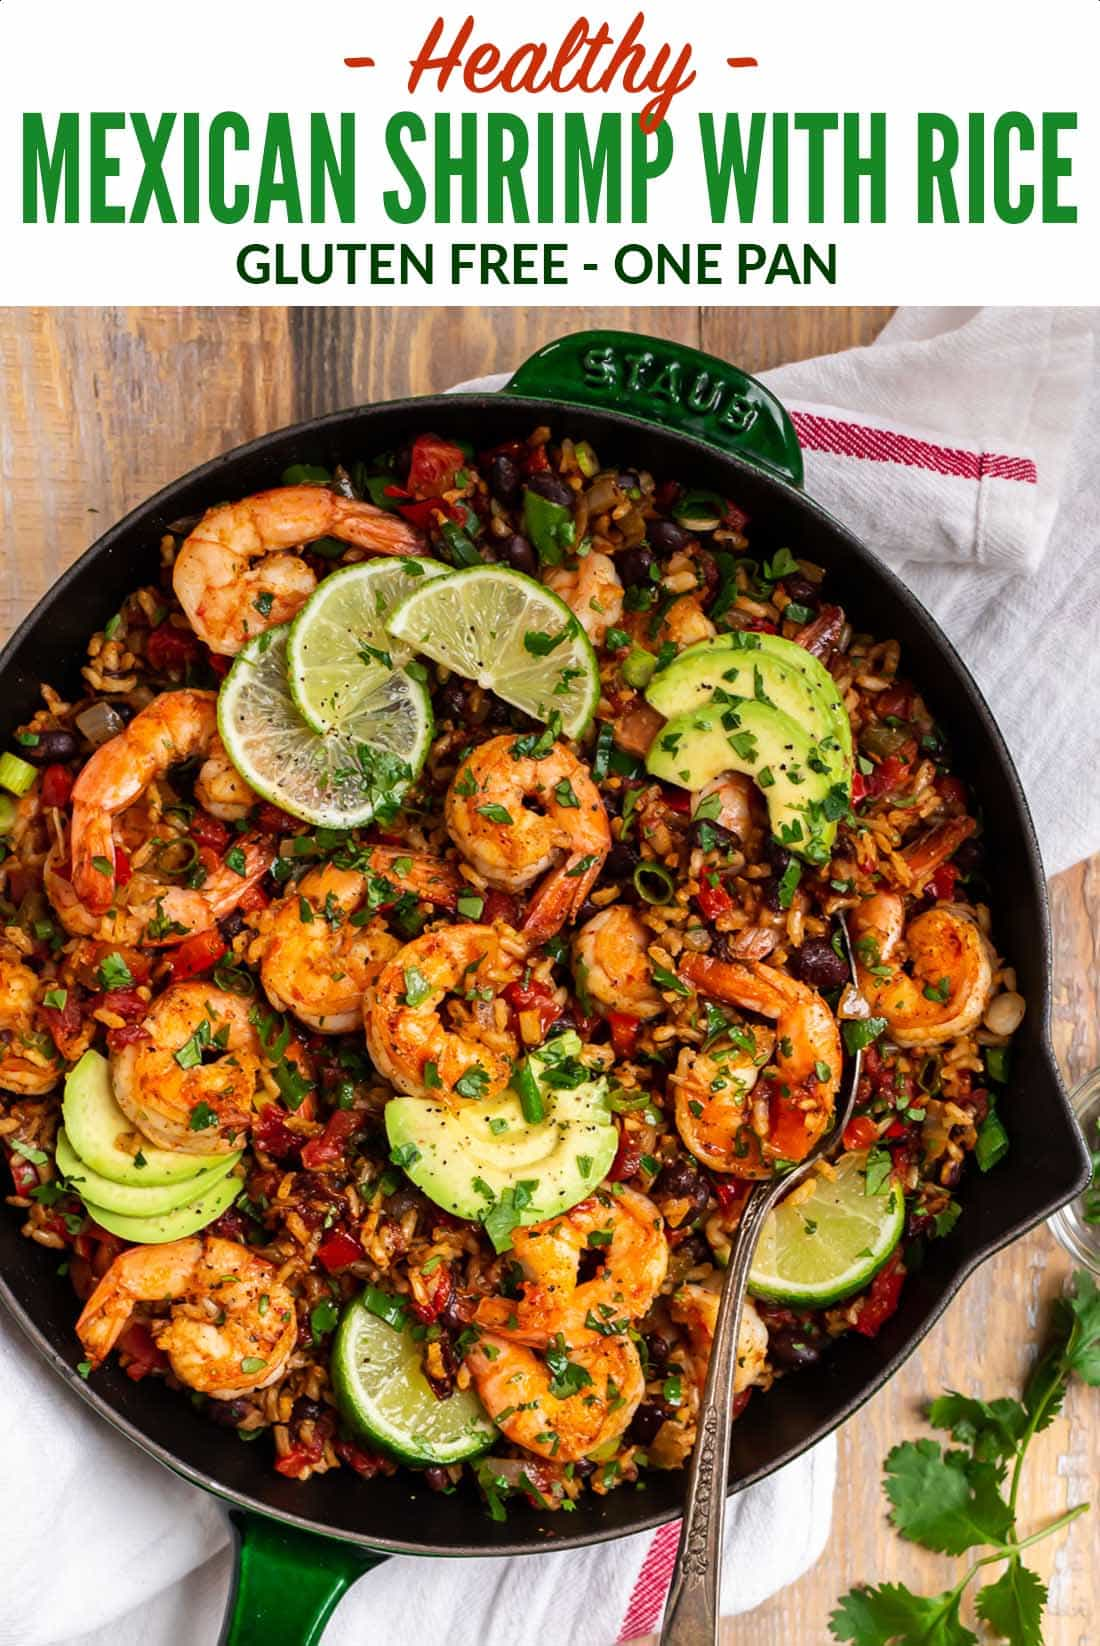 Healthy Mexican Shrimp and Rice. Easy one skillet dinner that's full of spicy Mexican flavor! Juicy shrimp, colorful veggies, whole grain brown rice, and black beans make this a true all-in-one meal. #wellplated #glutenfree #shrimp #mexican